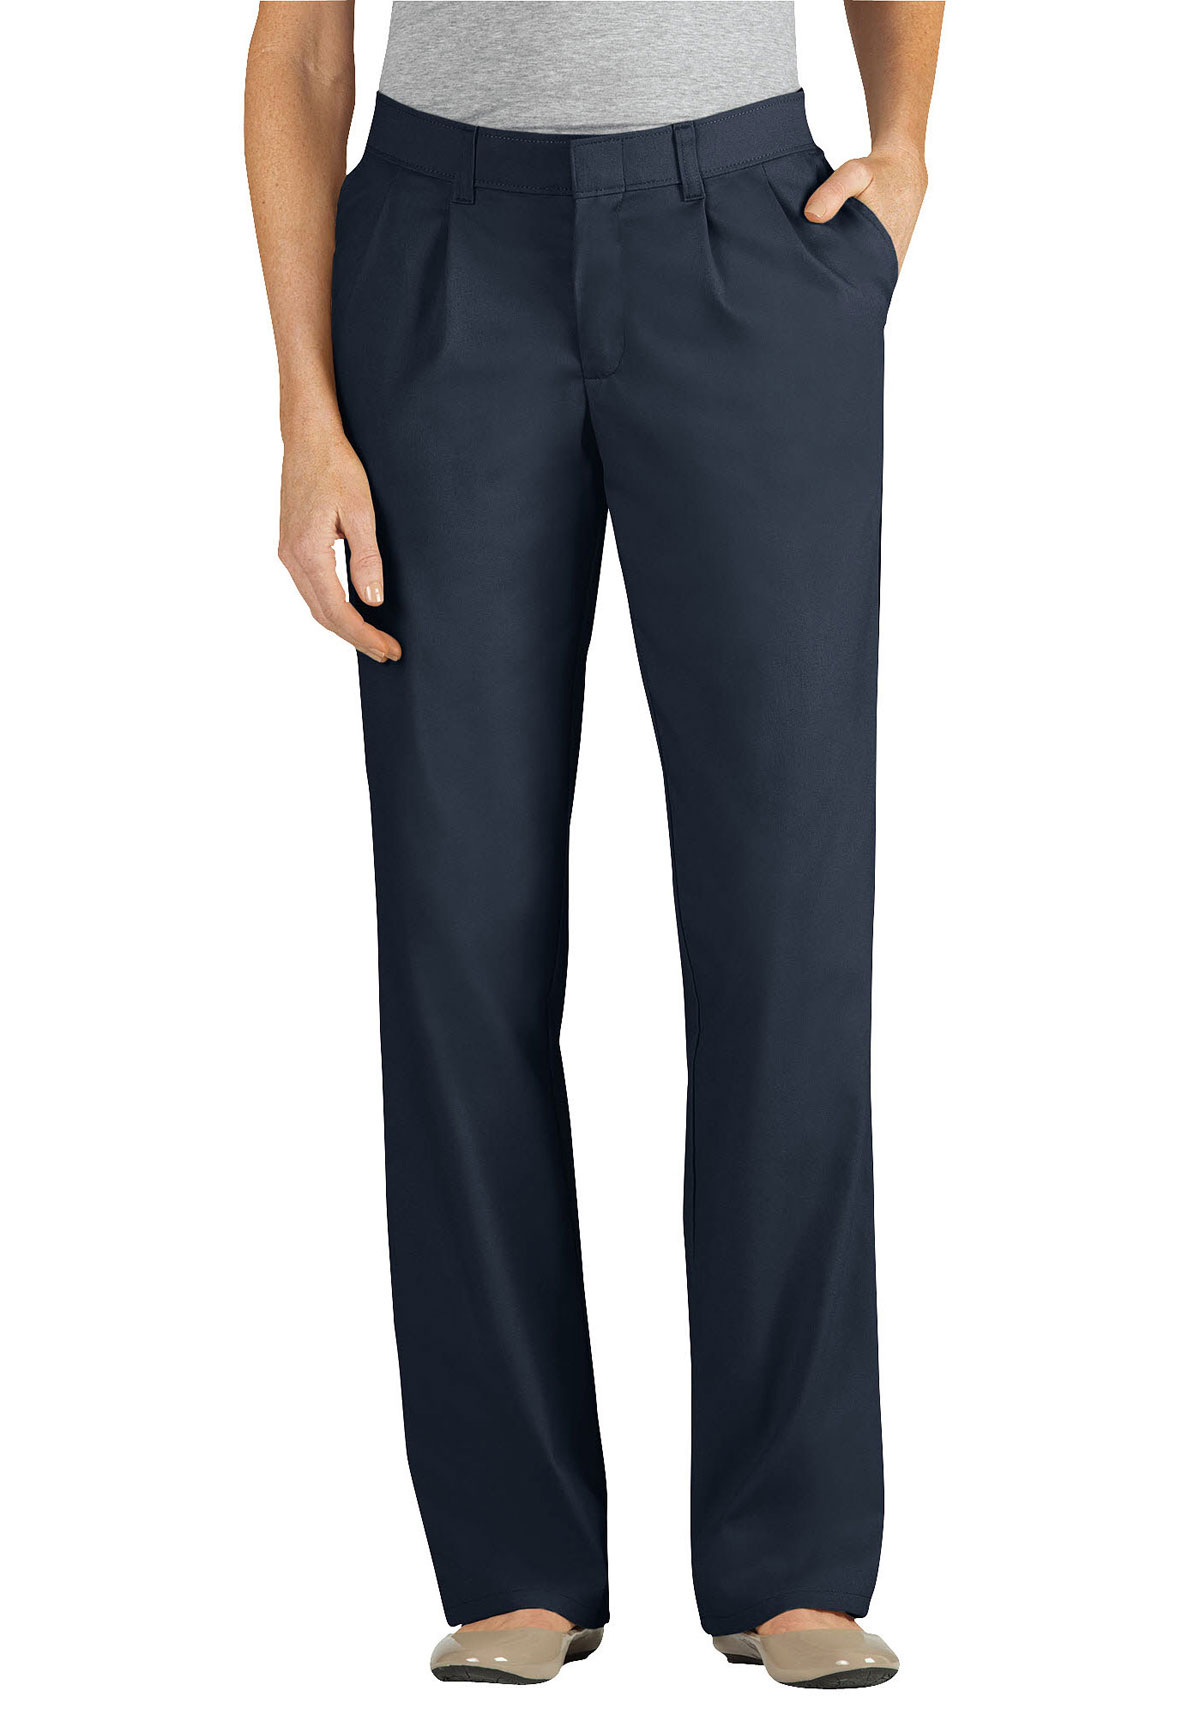 Model This Feeling Is Especially True When It Comes To Mens Pants Some Men, Though, Might Find Pleated Pants To Be More Comfortable For Women, Flatfront Pants Generally Are Considered More Stylish Than Pleated Looks, But There Can Be